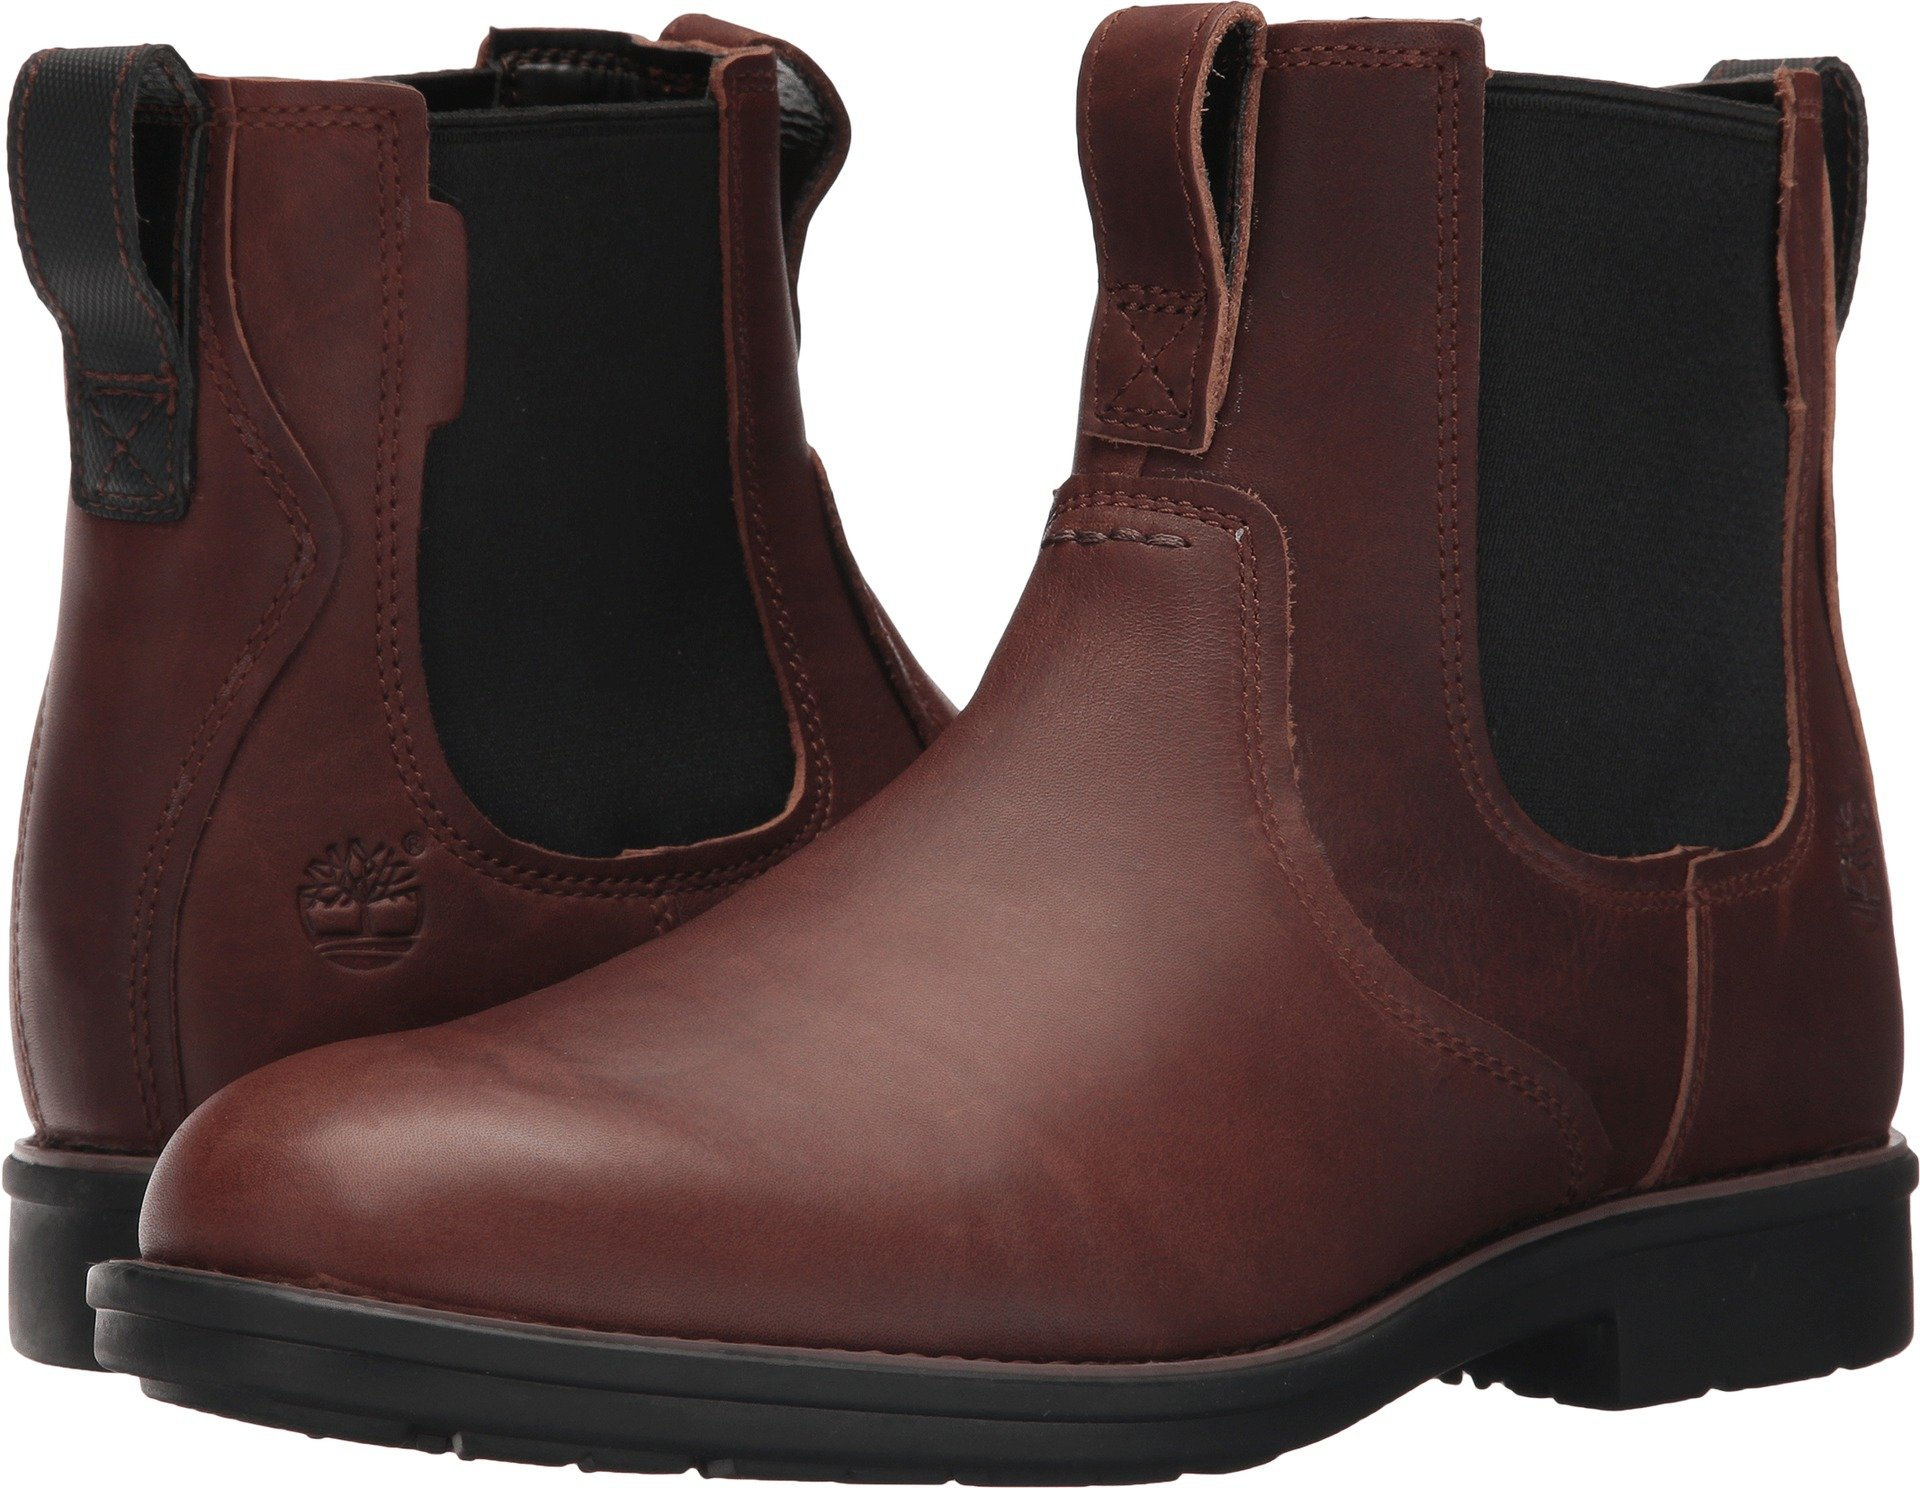 Timberland Men's Carter Notch Chelsea Boot, Dark Brown Full Grain, 11 D(M) US